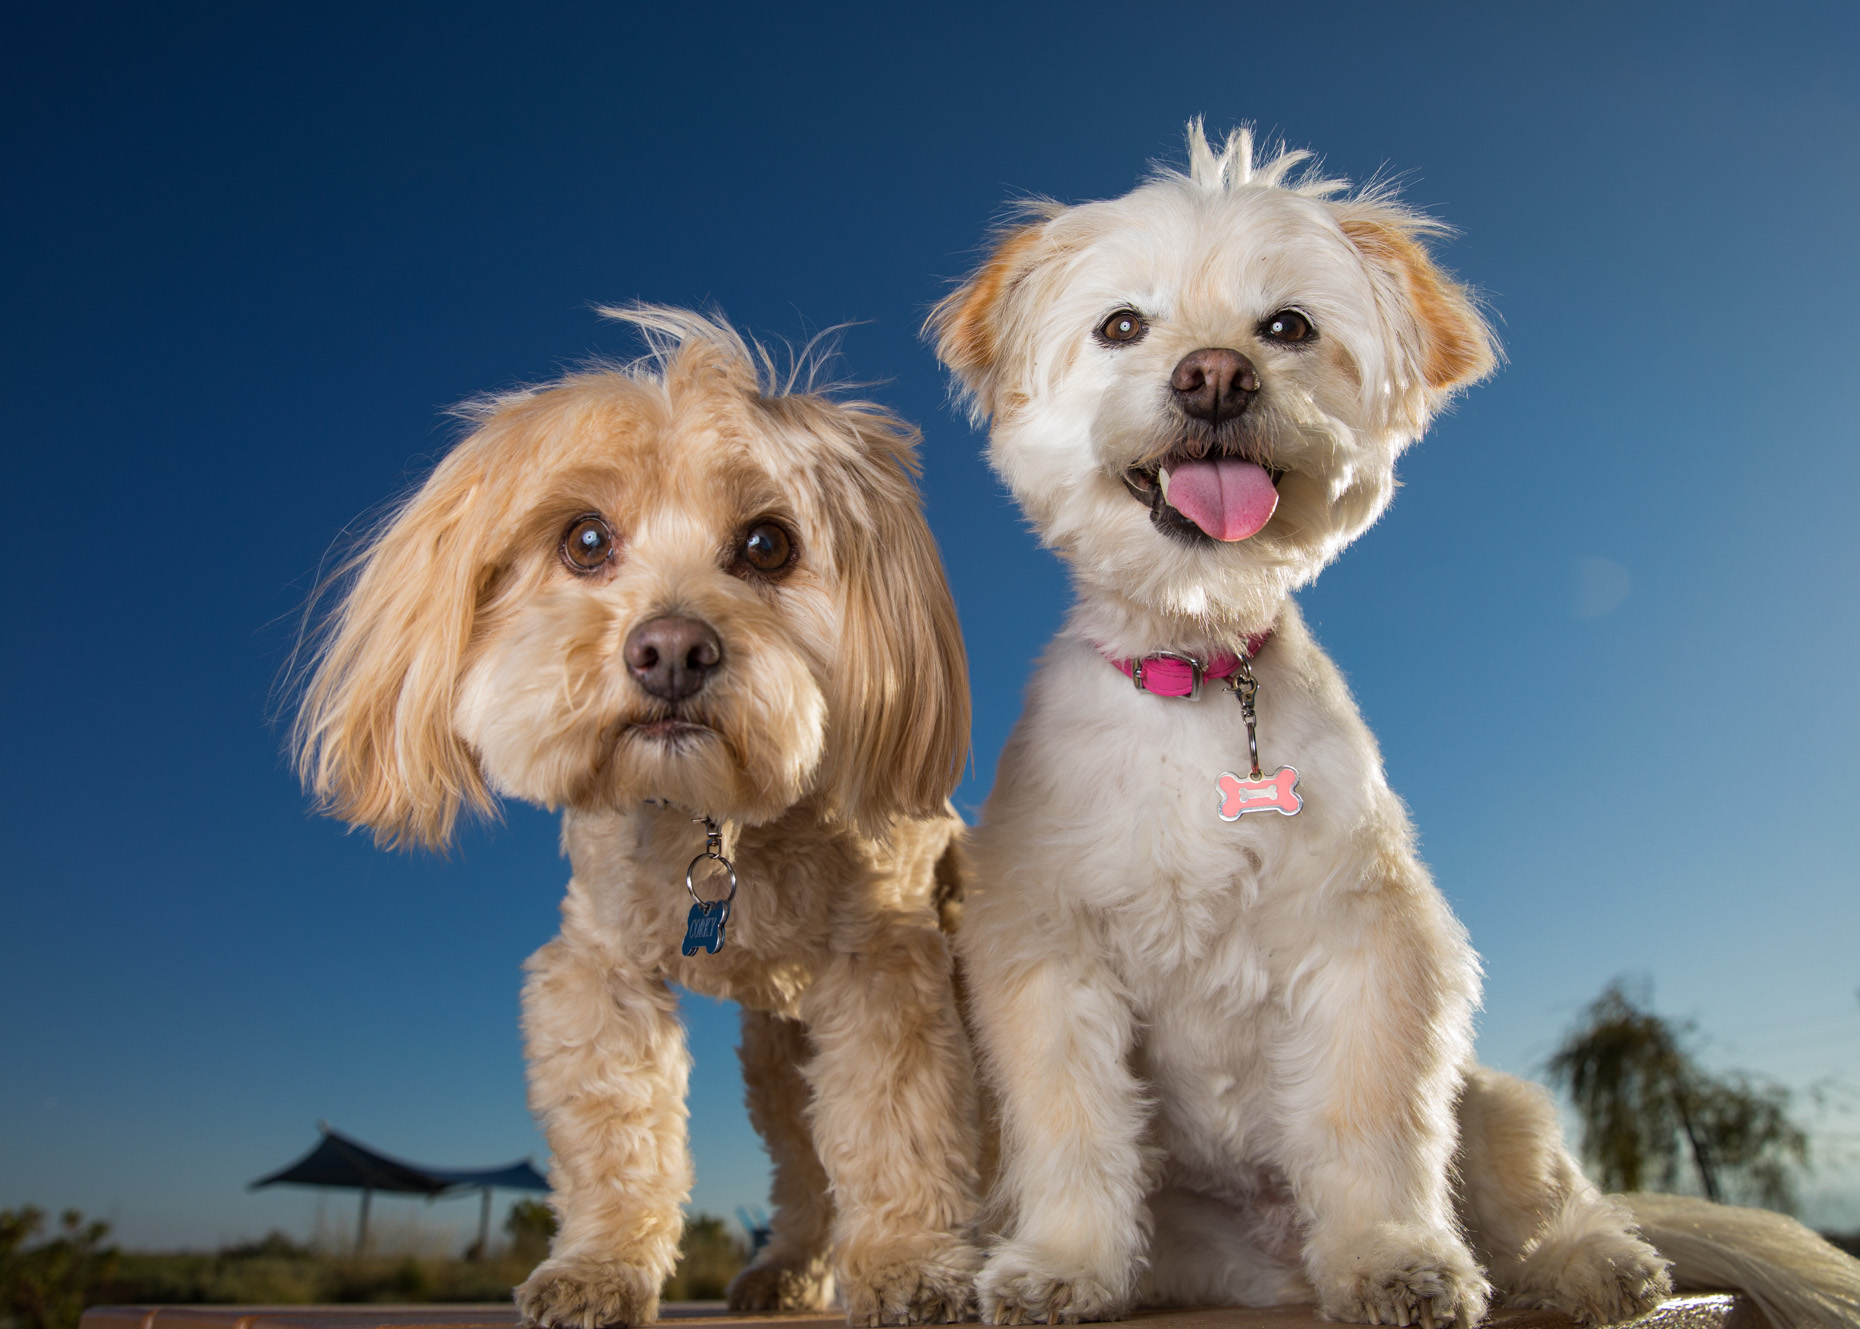 Pet Photography| Two Dog Friends Under Blue Sky by Mark Rogers